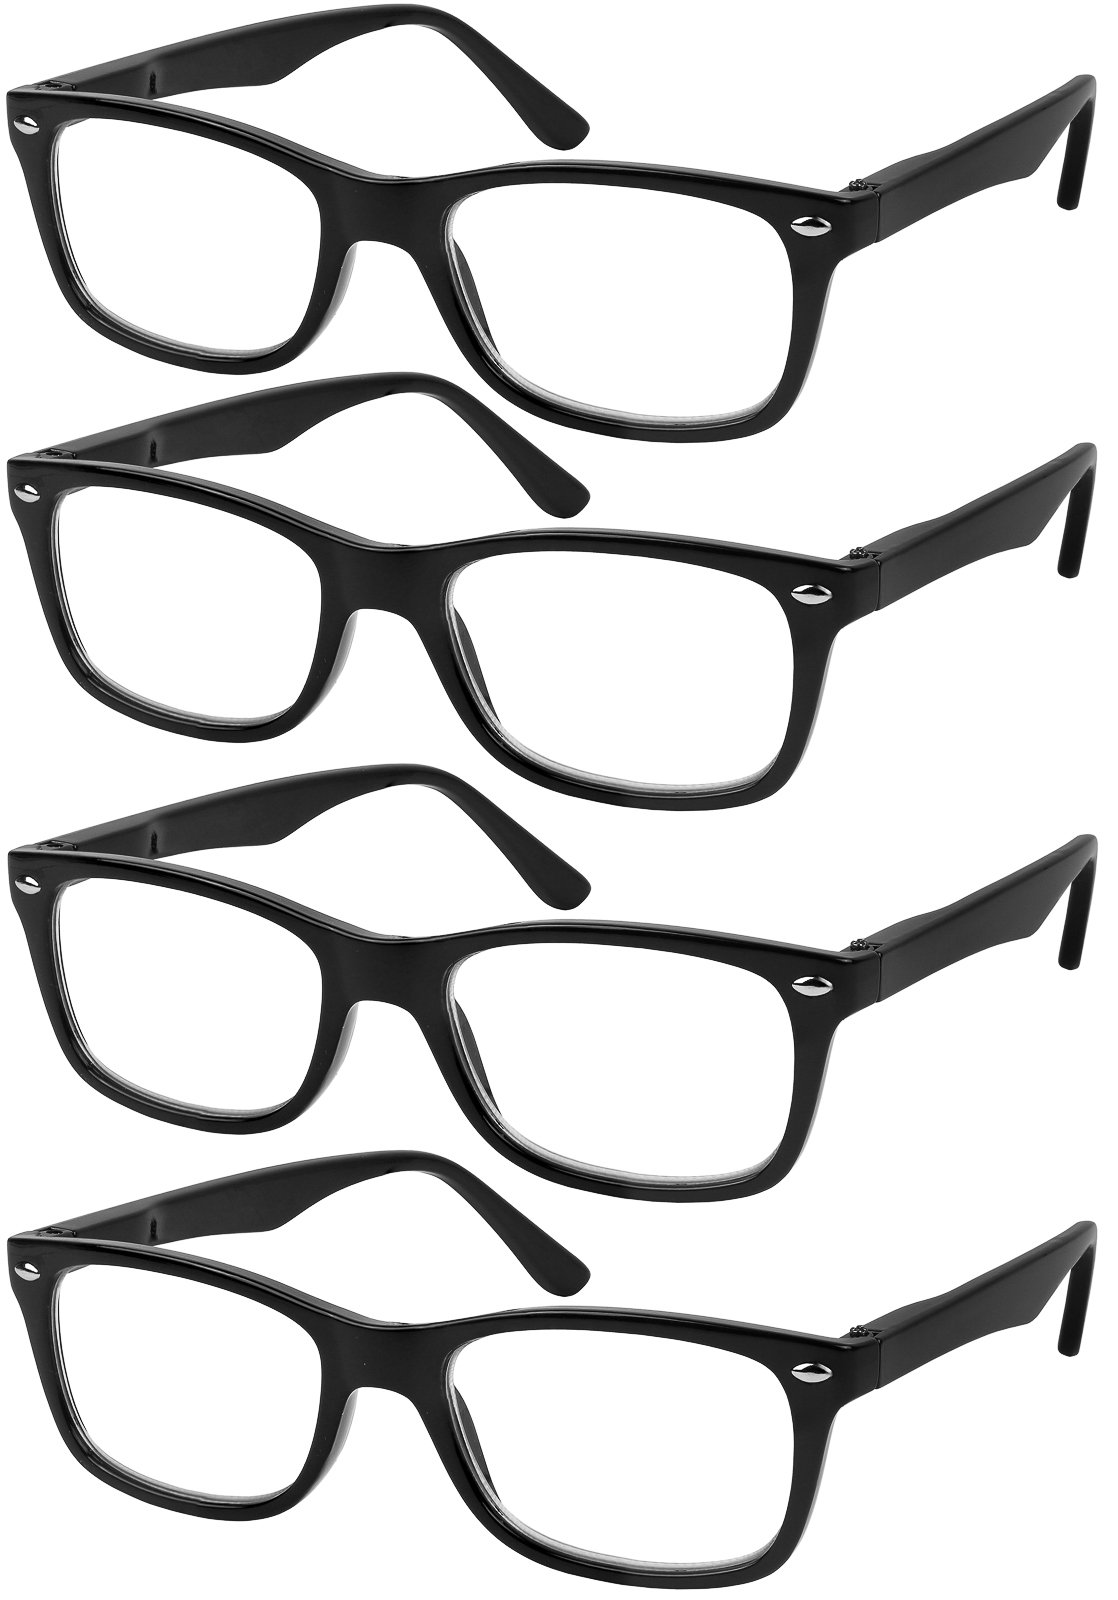 Reading Glasses Set of 4 Black Quality Readers Spring Hinge Glasses for Reading for Men and Women +3